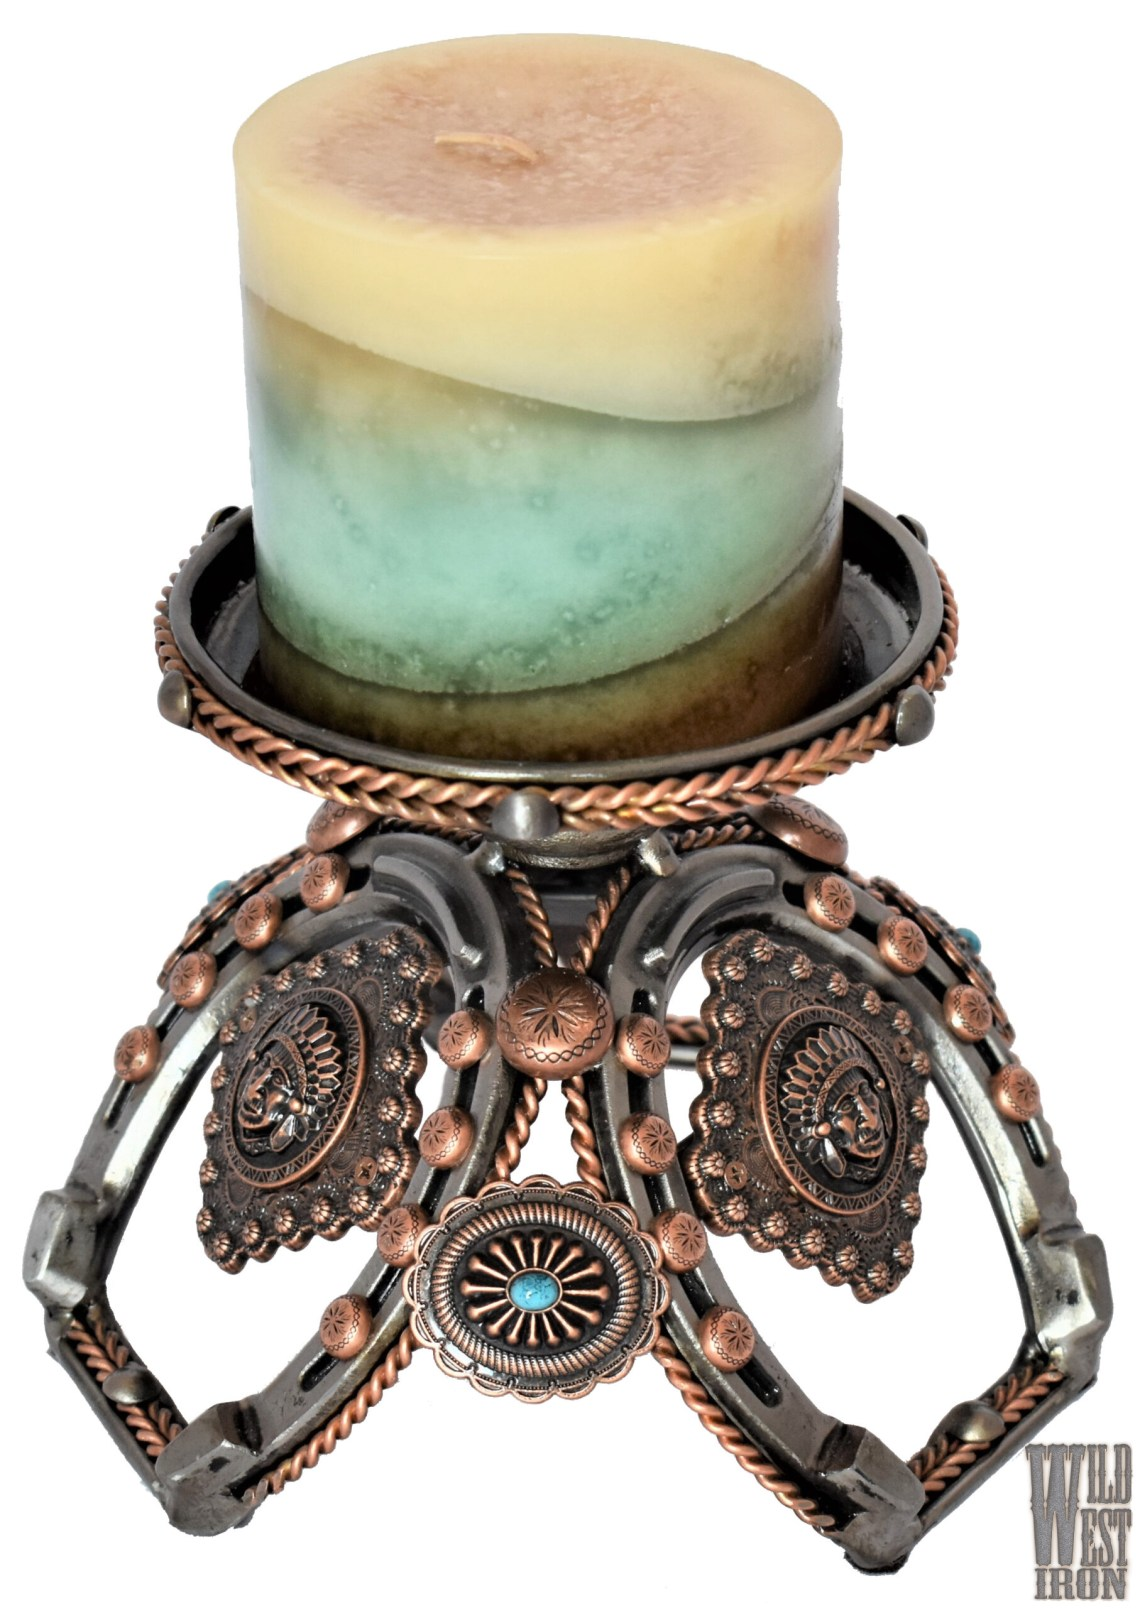 Copper and Horseshoe Candle Holder View Two